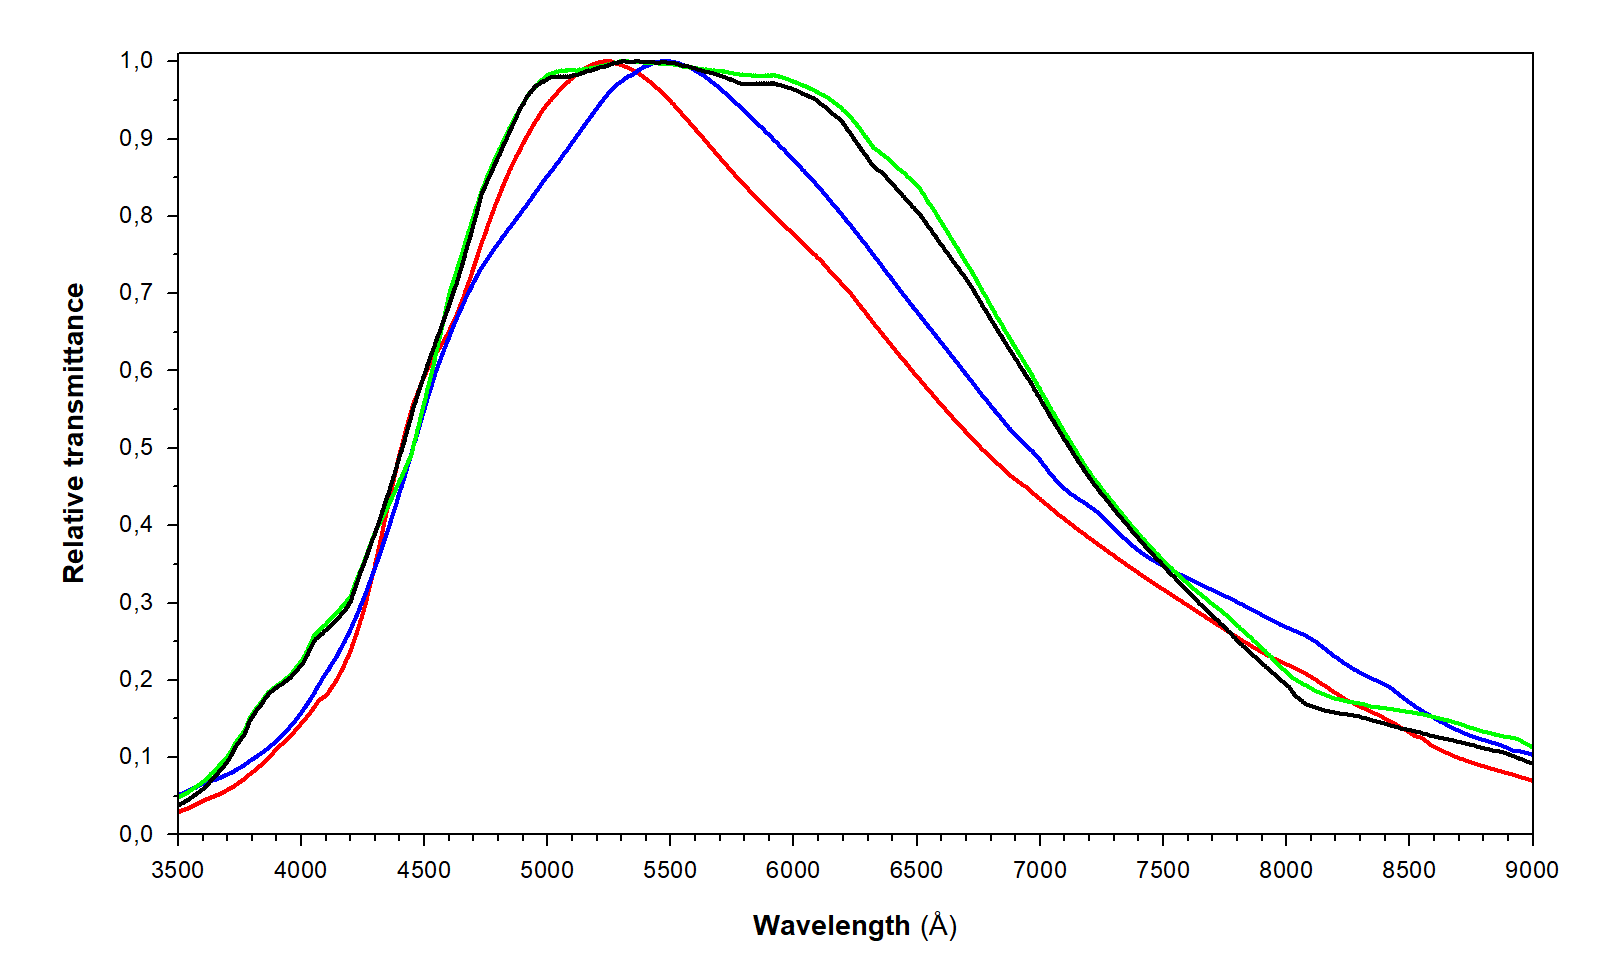 The calibration curve of the relative transmittance of the spectrographs. The calibration curves of the following spectrographs are shown: Watec 902 H2 Ultimate (marked in green), VE 6047 EF/OSD (marked in black), QHY5L-IIM (marked in red), PointGrey Grasshoper3 GS3-U3-32S4M-C (marked in blue). On the y-axis of the graph is the spectrograph relative transmittance (relative units) and on the x-axis is wavelength (Å).